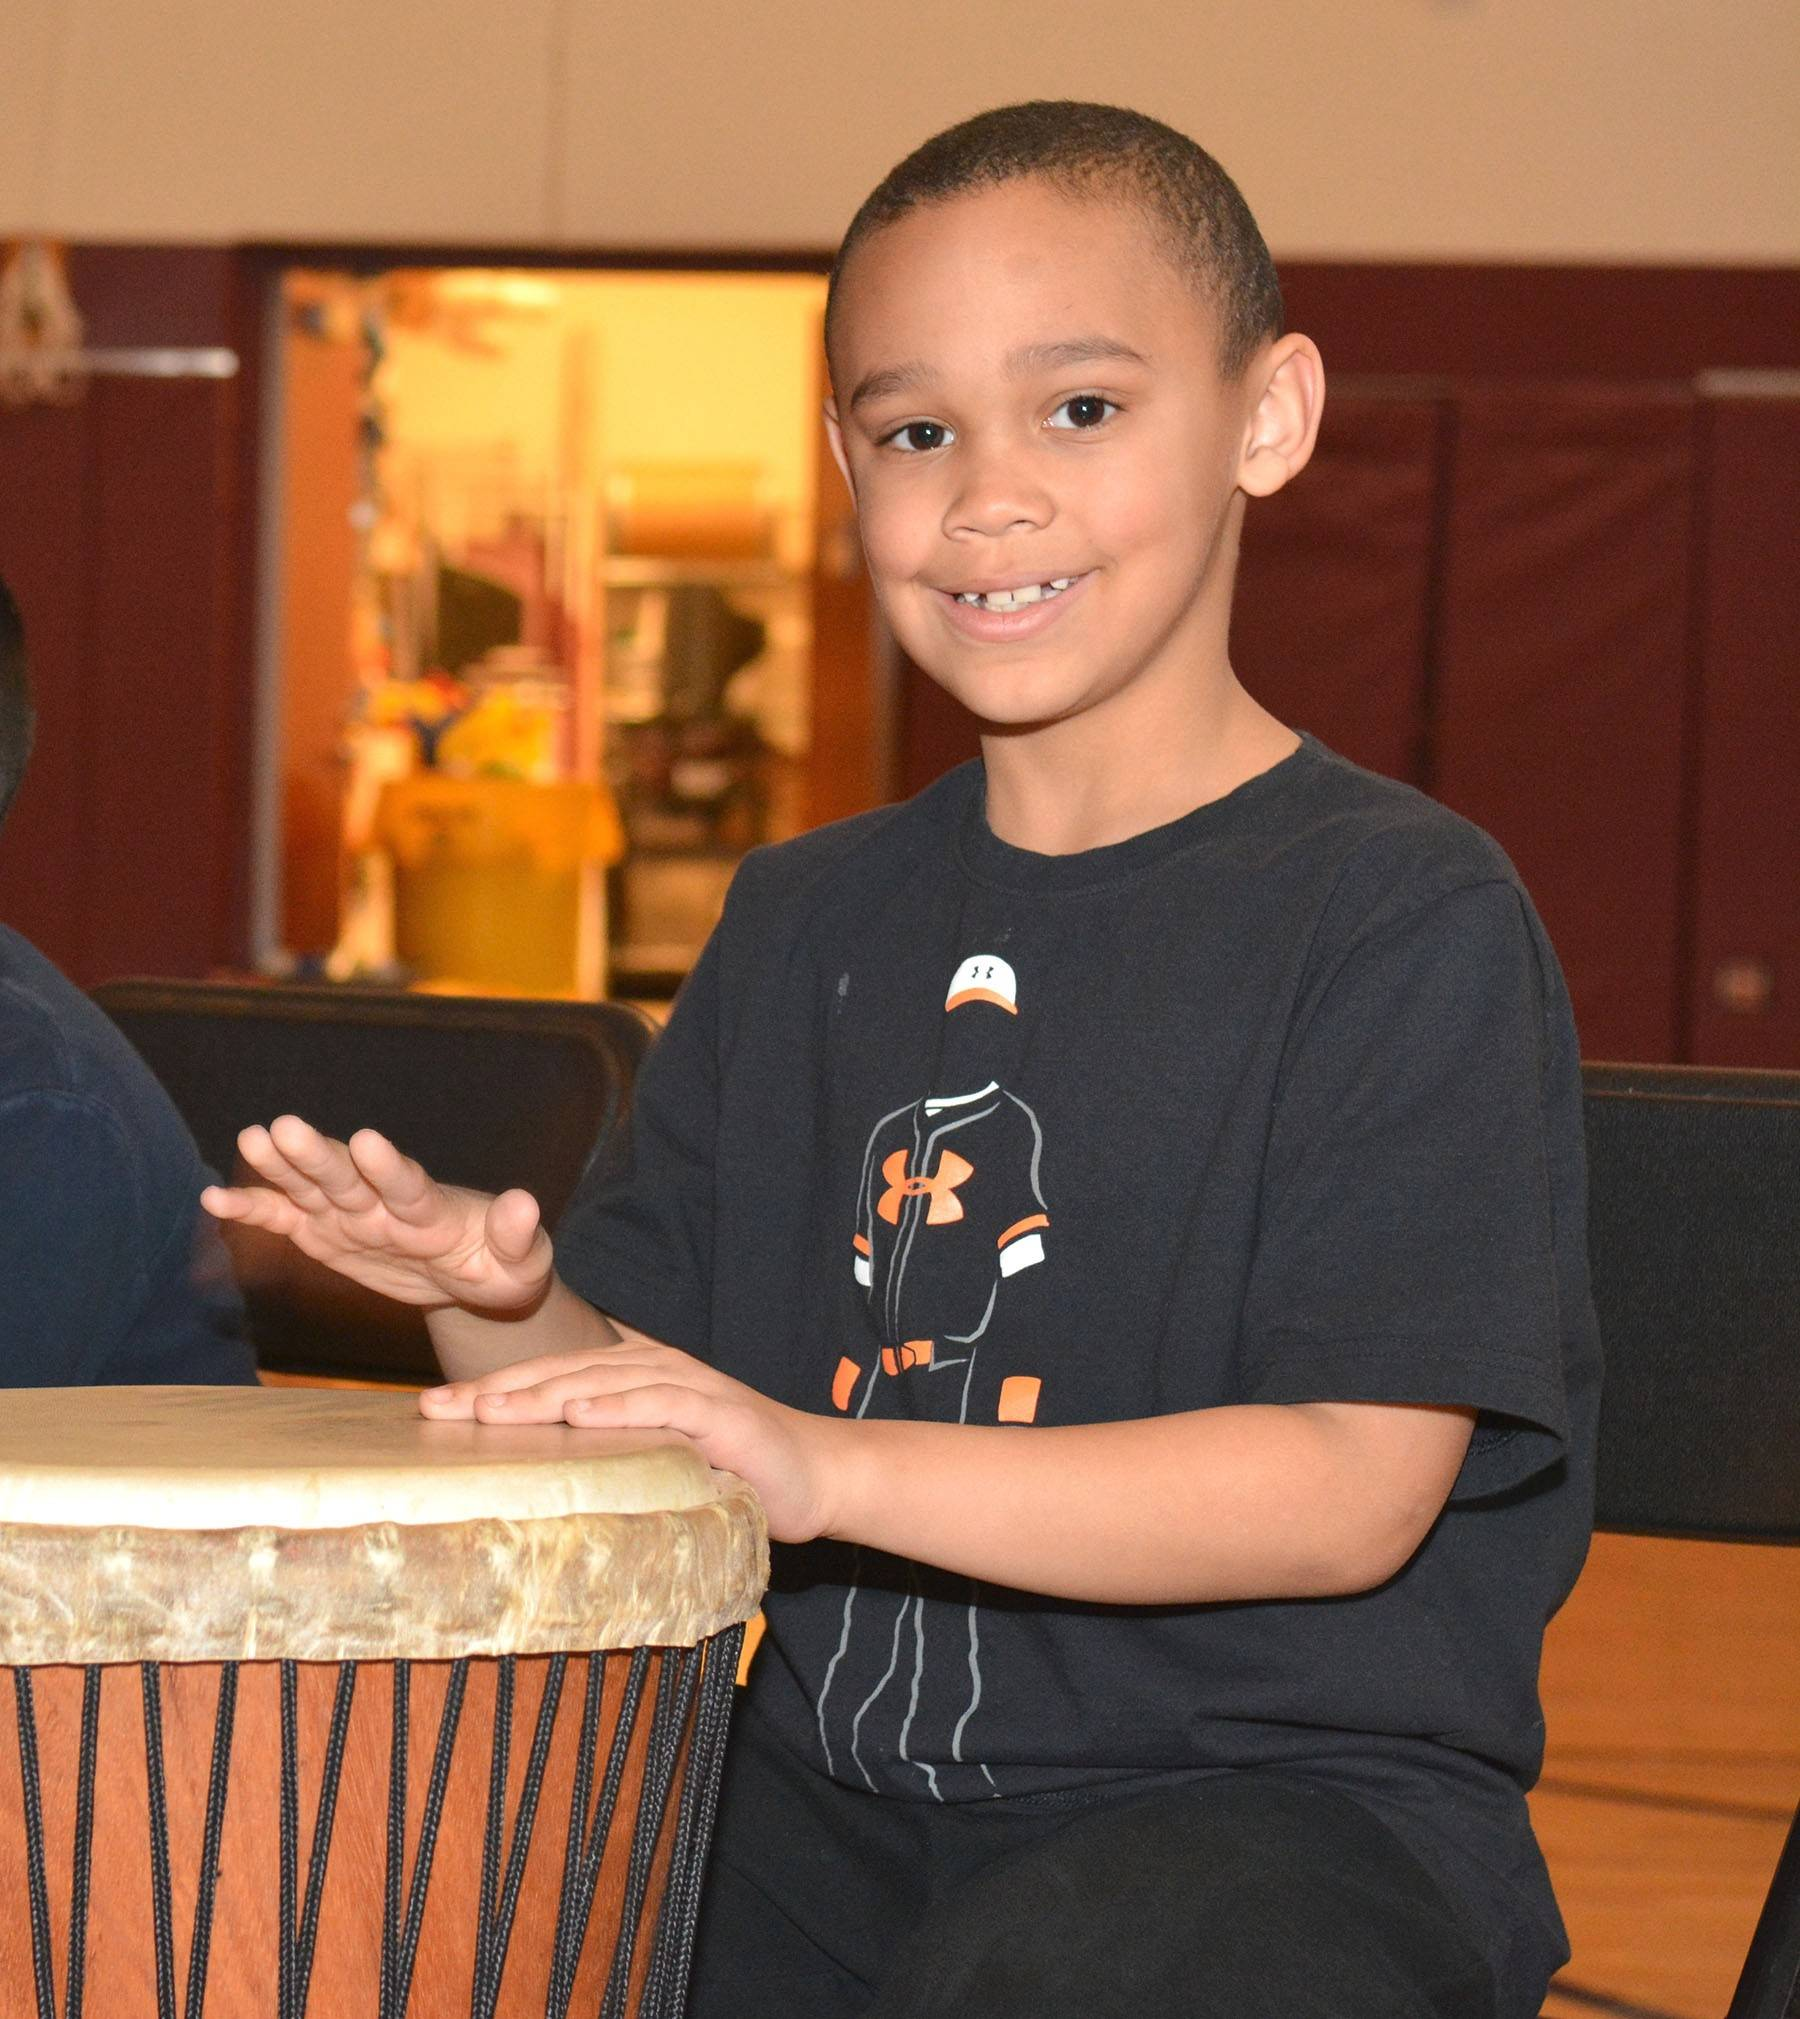 Lucas Adams takes part in the drumming program at Townline Elementary School in Vernon Hills.